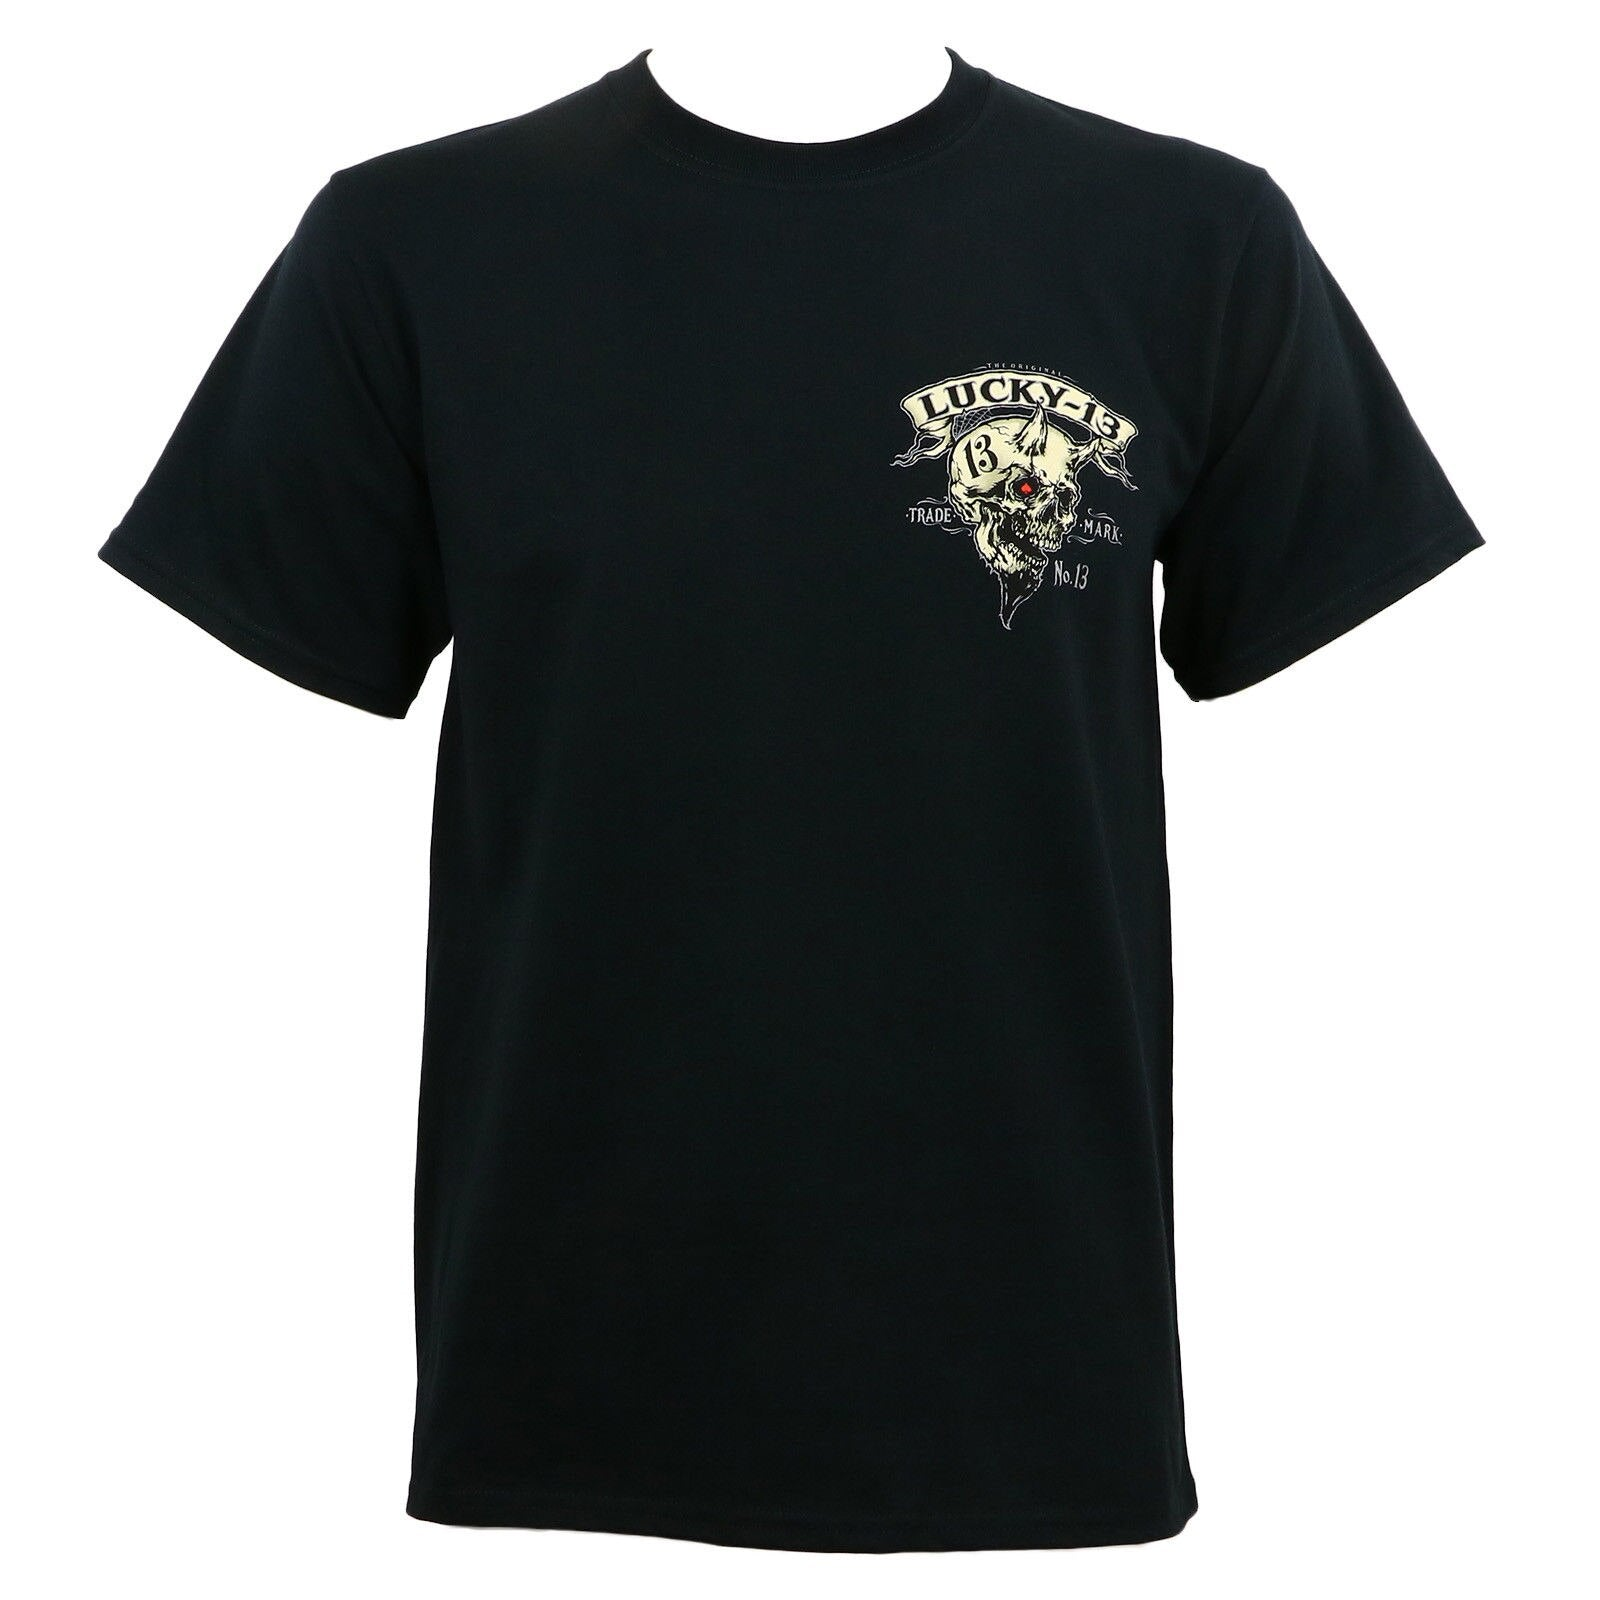 LUCKY 13 Evil Skull Born To Lose T-Shirt